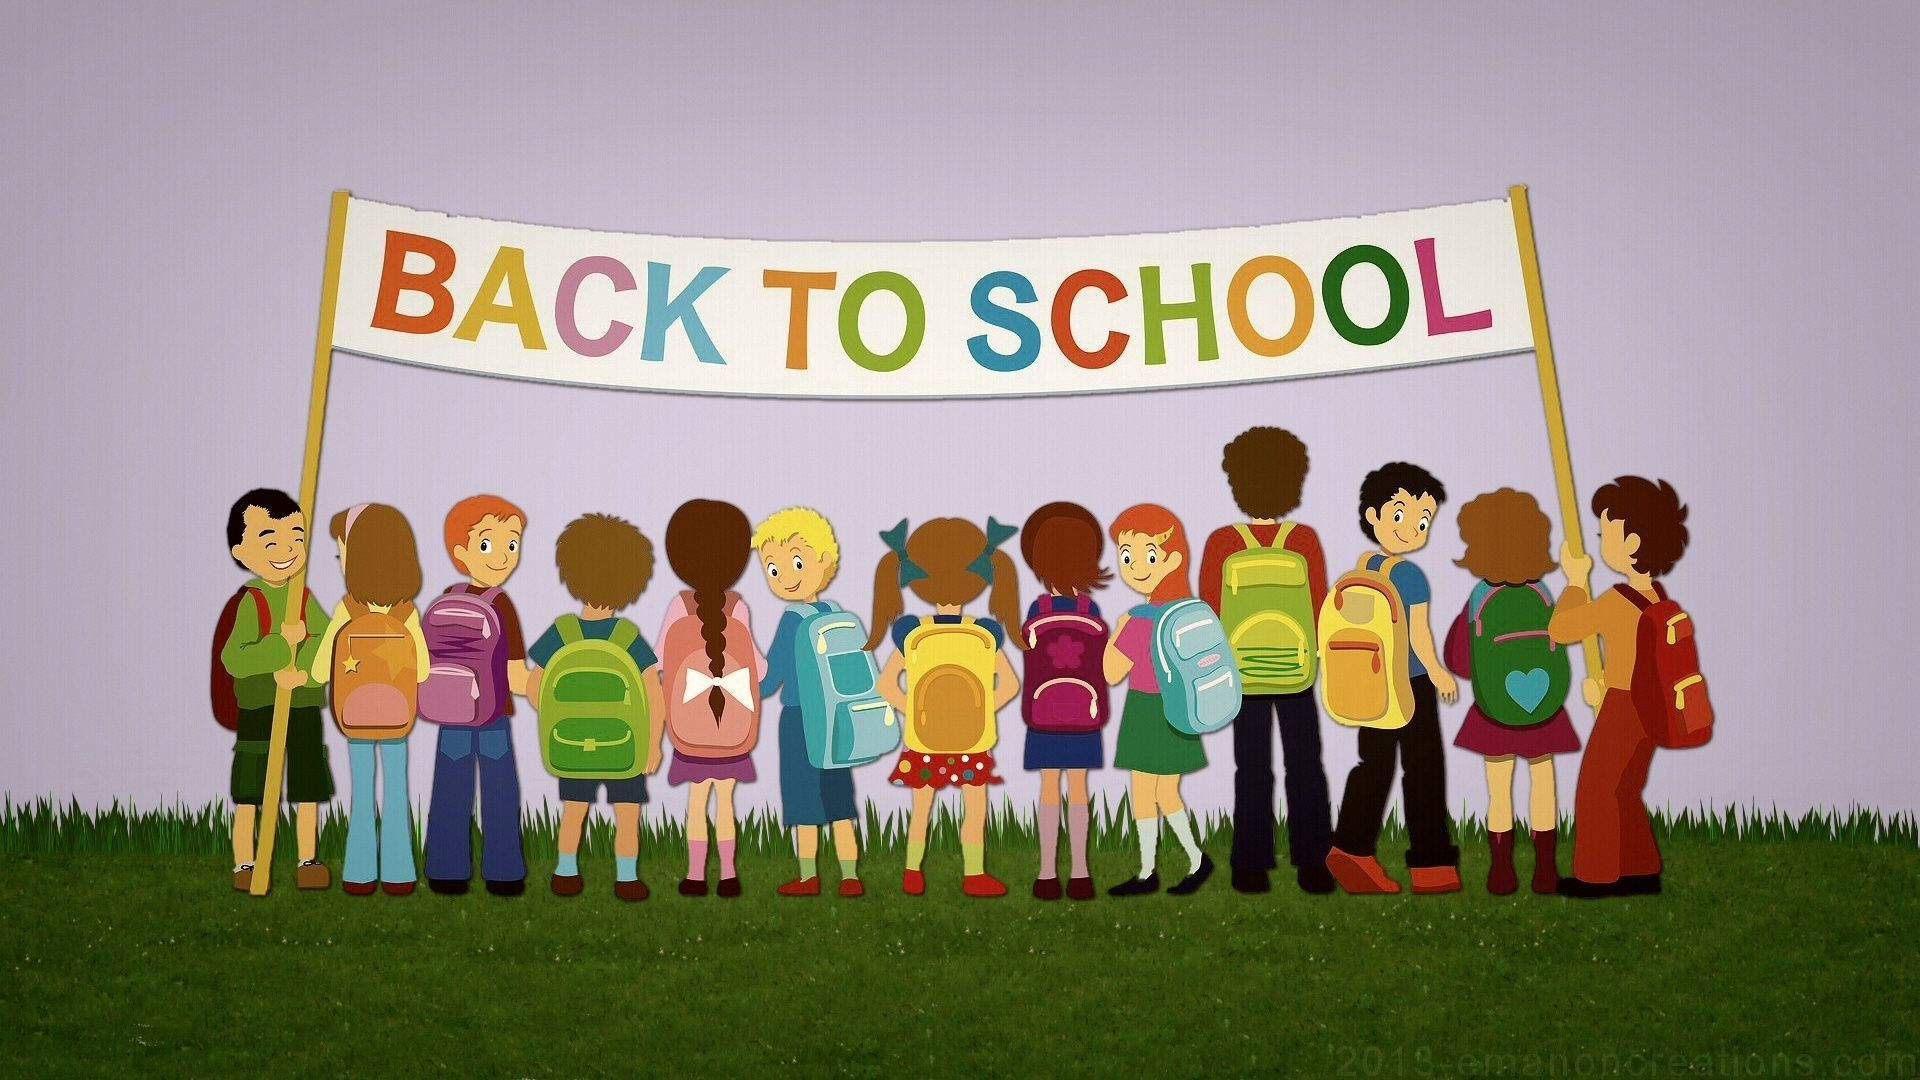 1920x1080 educational school back to school Wallpapers and 1920x1080